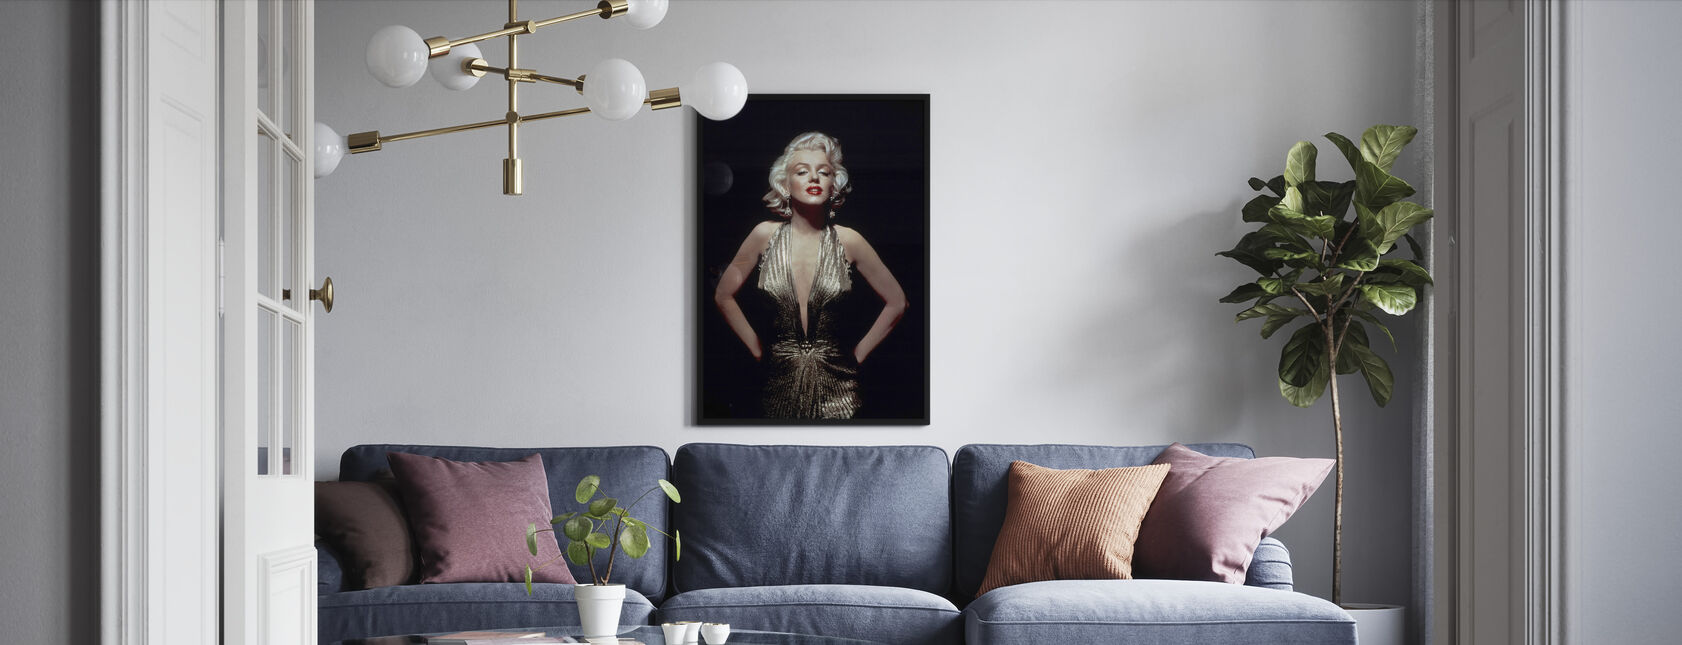 Marilyn Monroe in Gentlemen Prefer Blondes - Framed print - Living Room